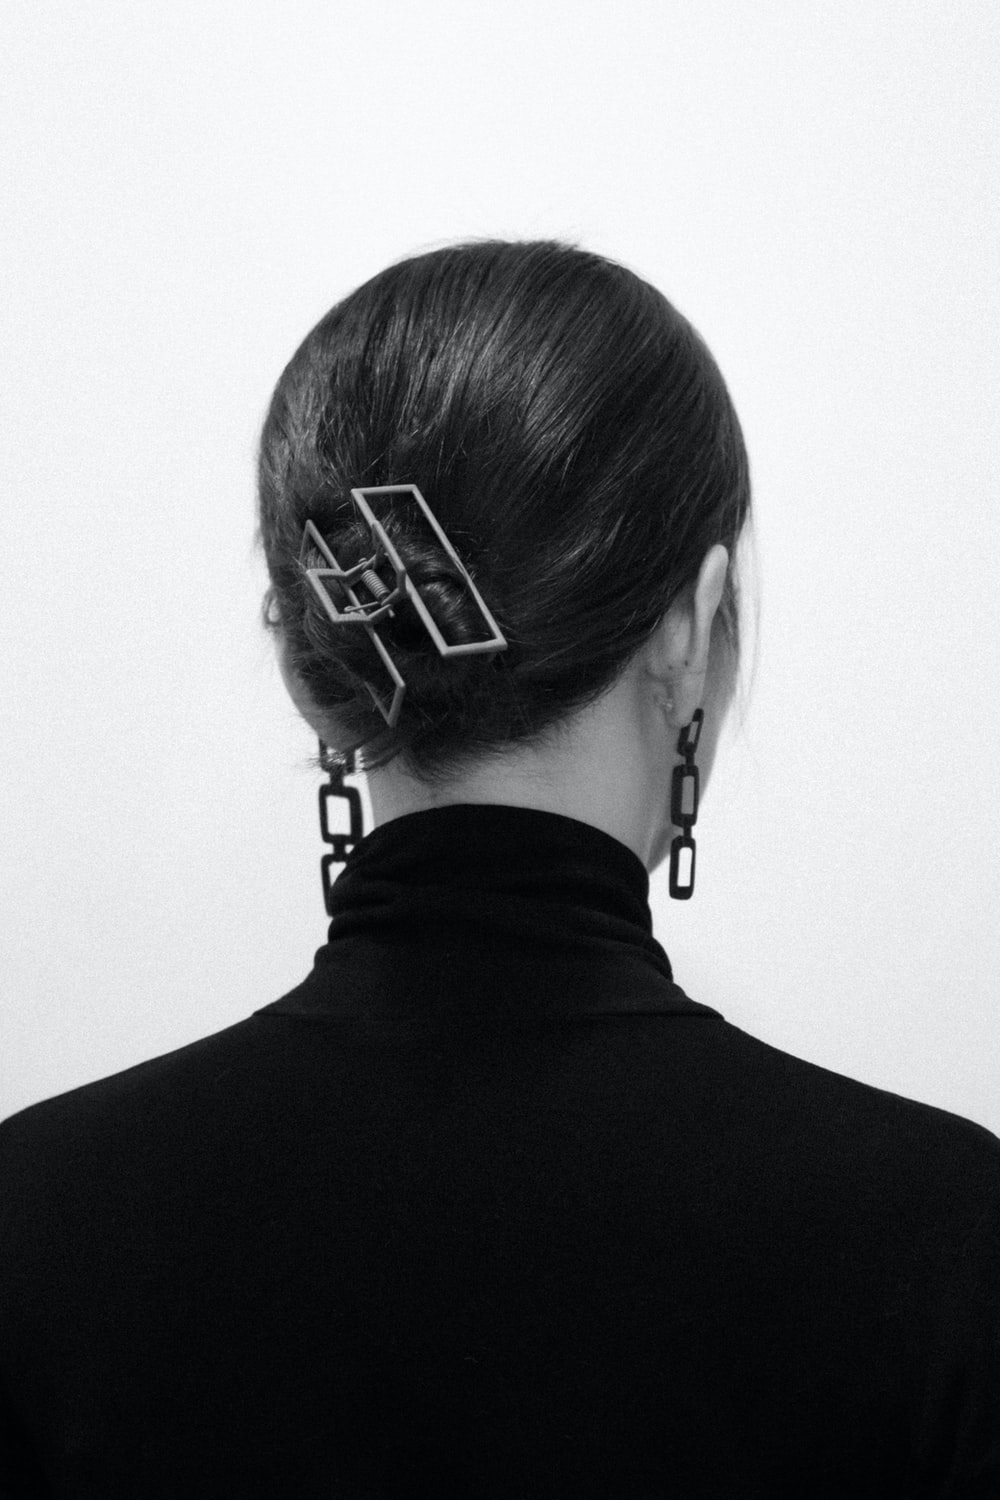 woman in black shirt with hair clip